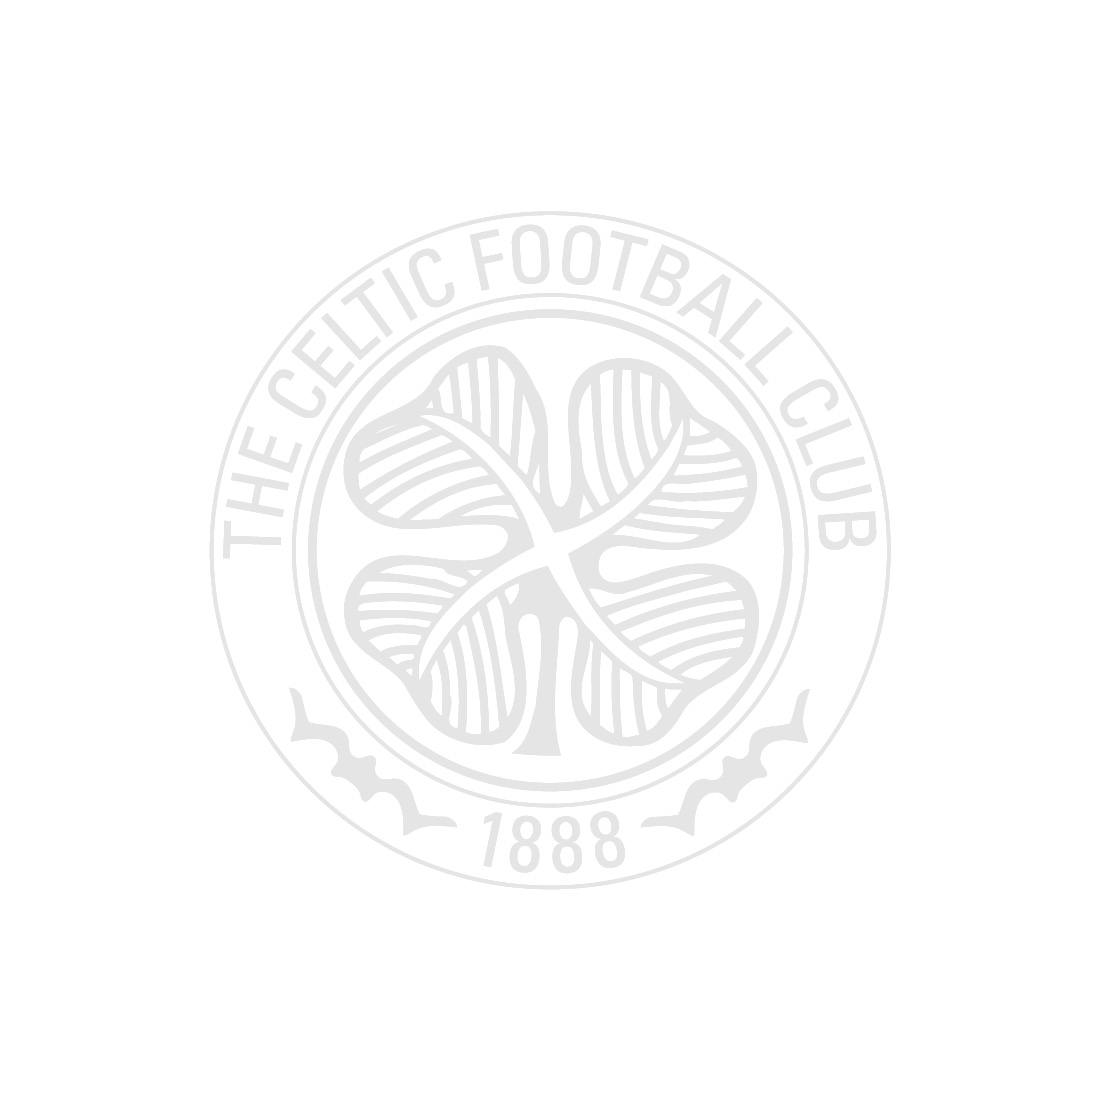 Celtic Scarf Hooped Confectionery Cracker